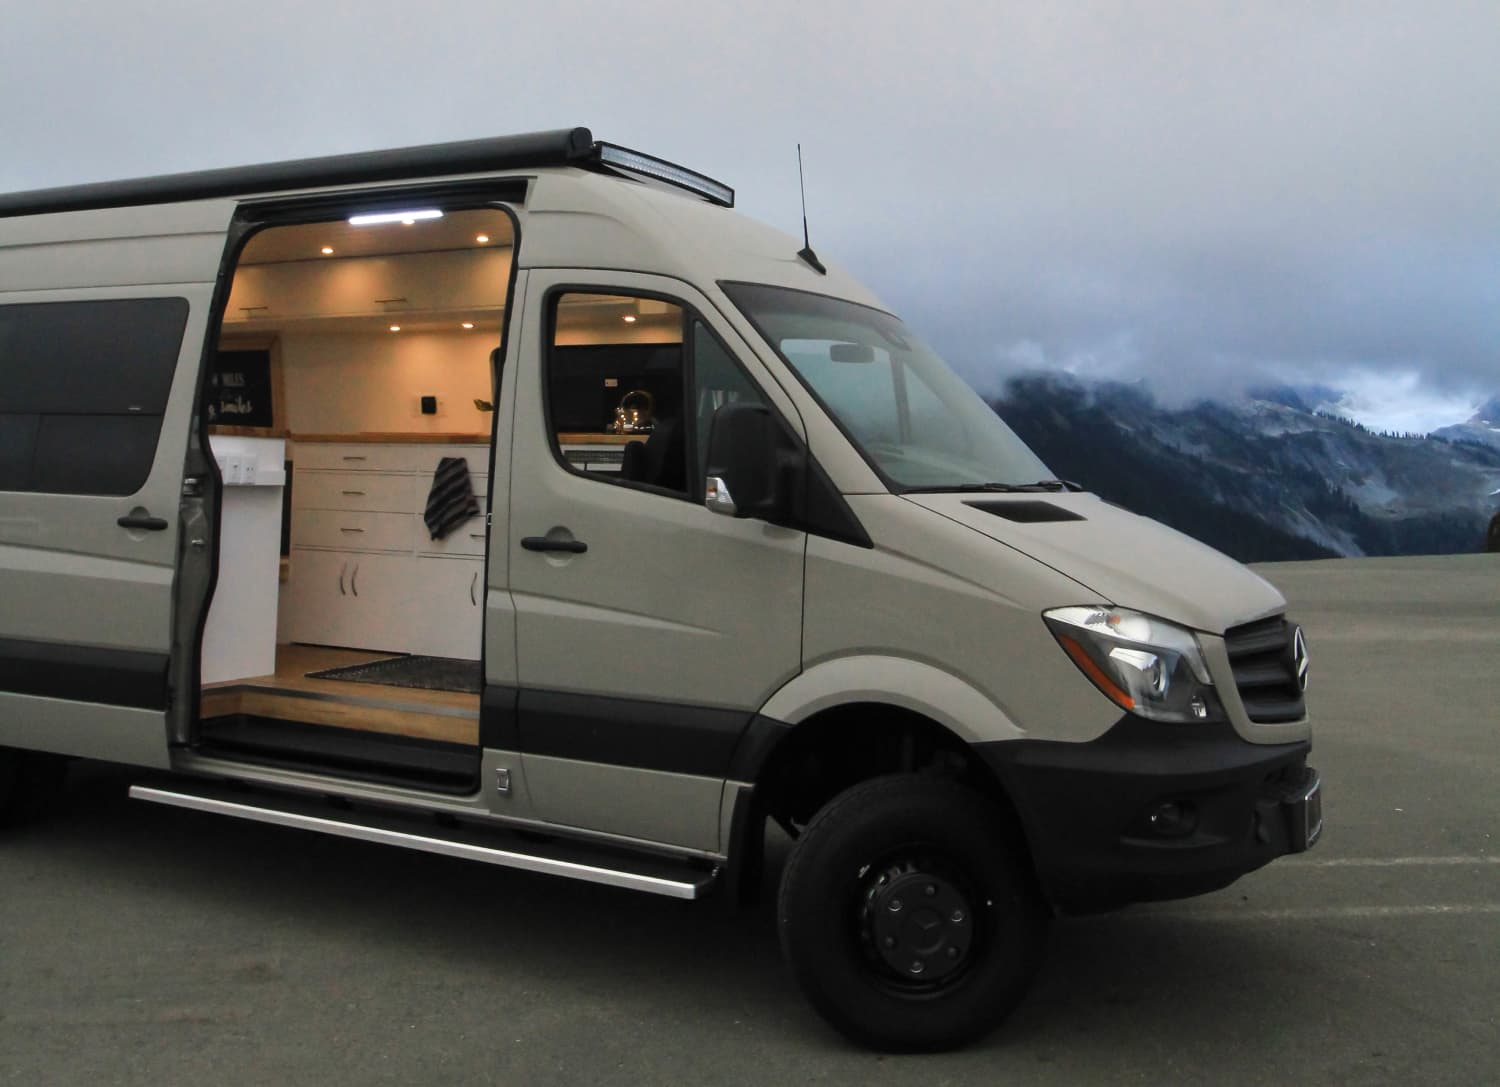 This Van Conversion Is Called Big Gigantic, For Good Reason